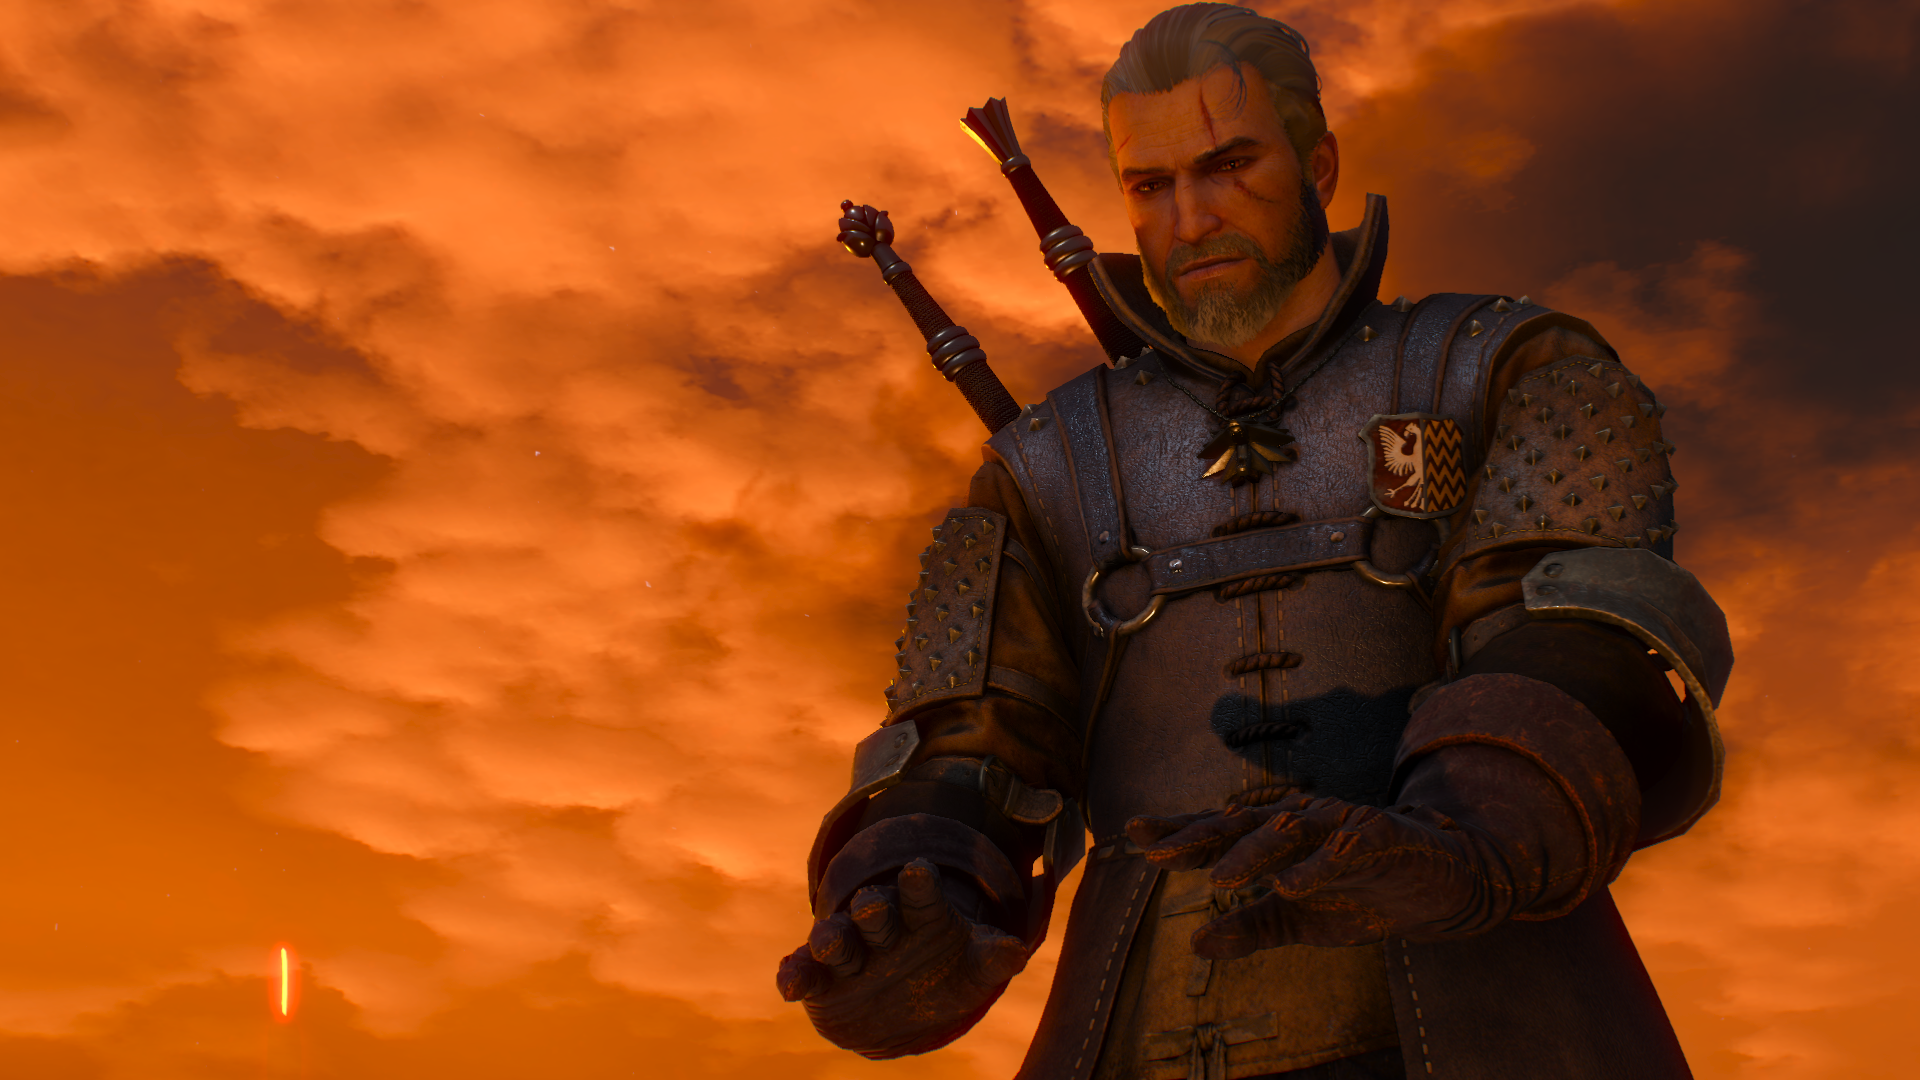 Геральт - Witcher 3: Wild Hunt, the The Withcer 3, Wild Hunt